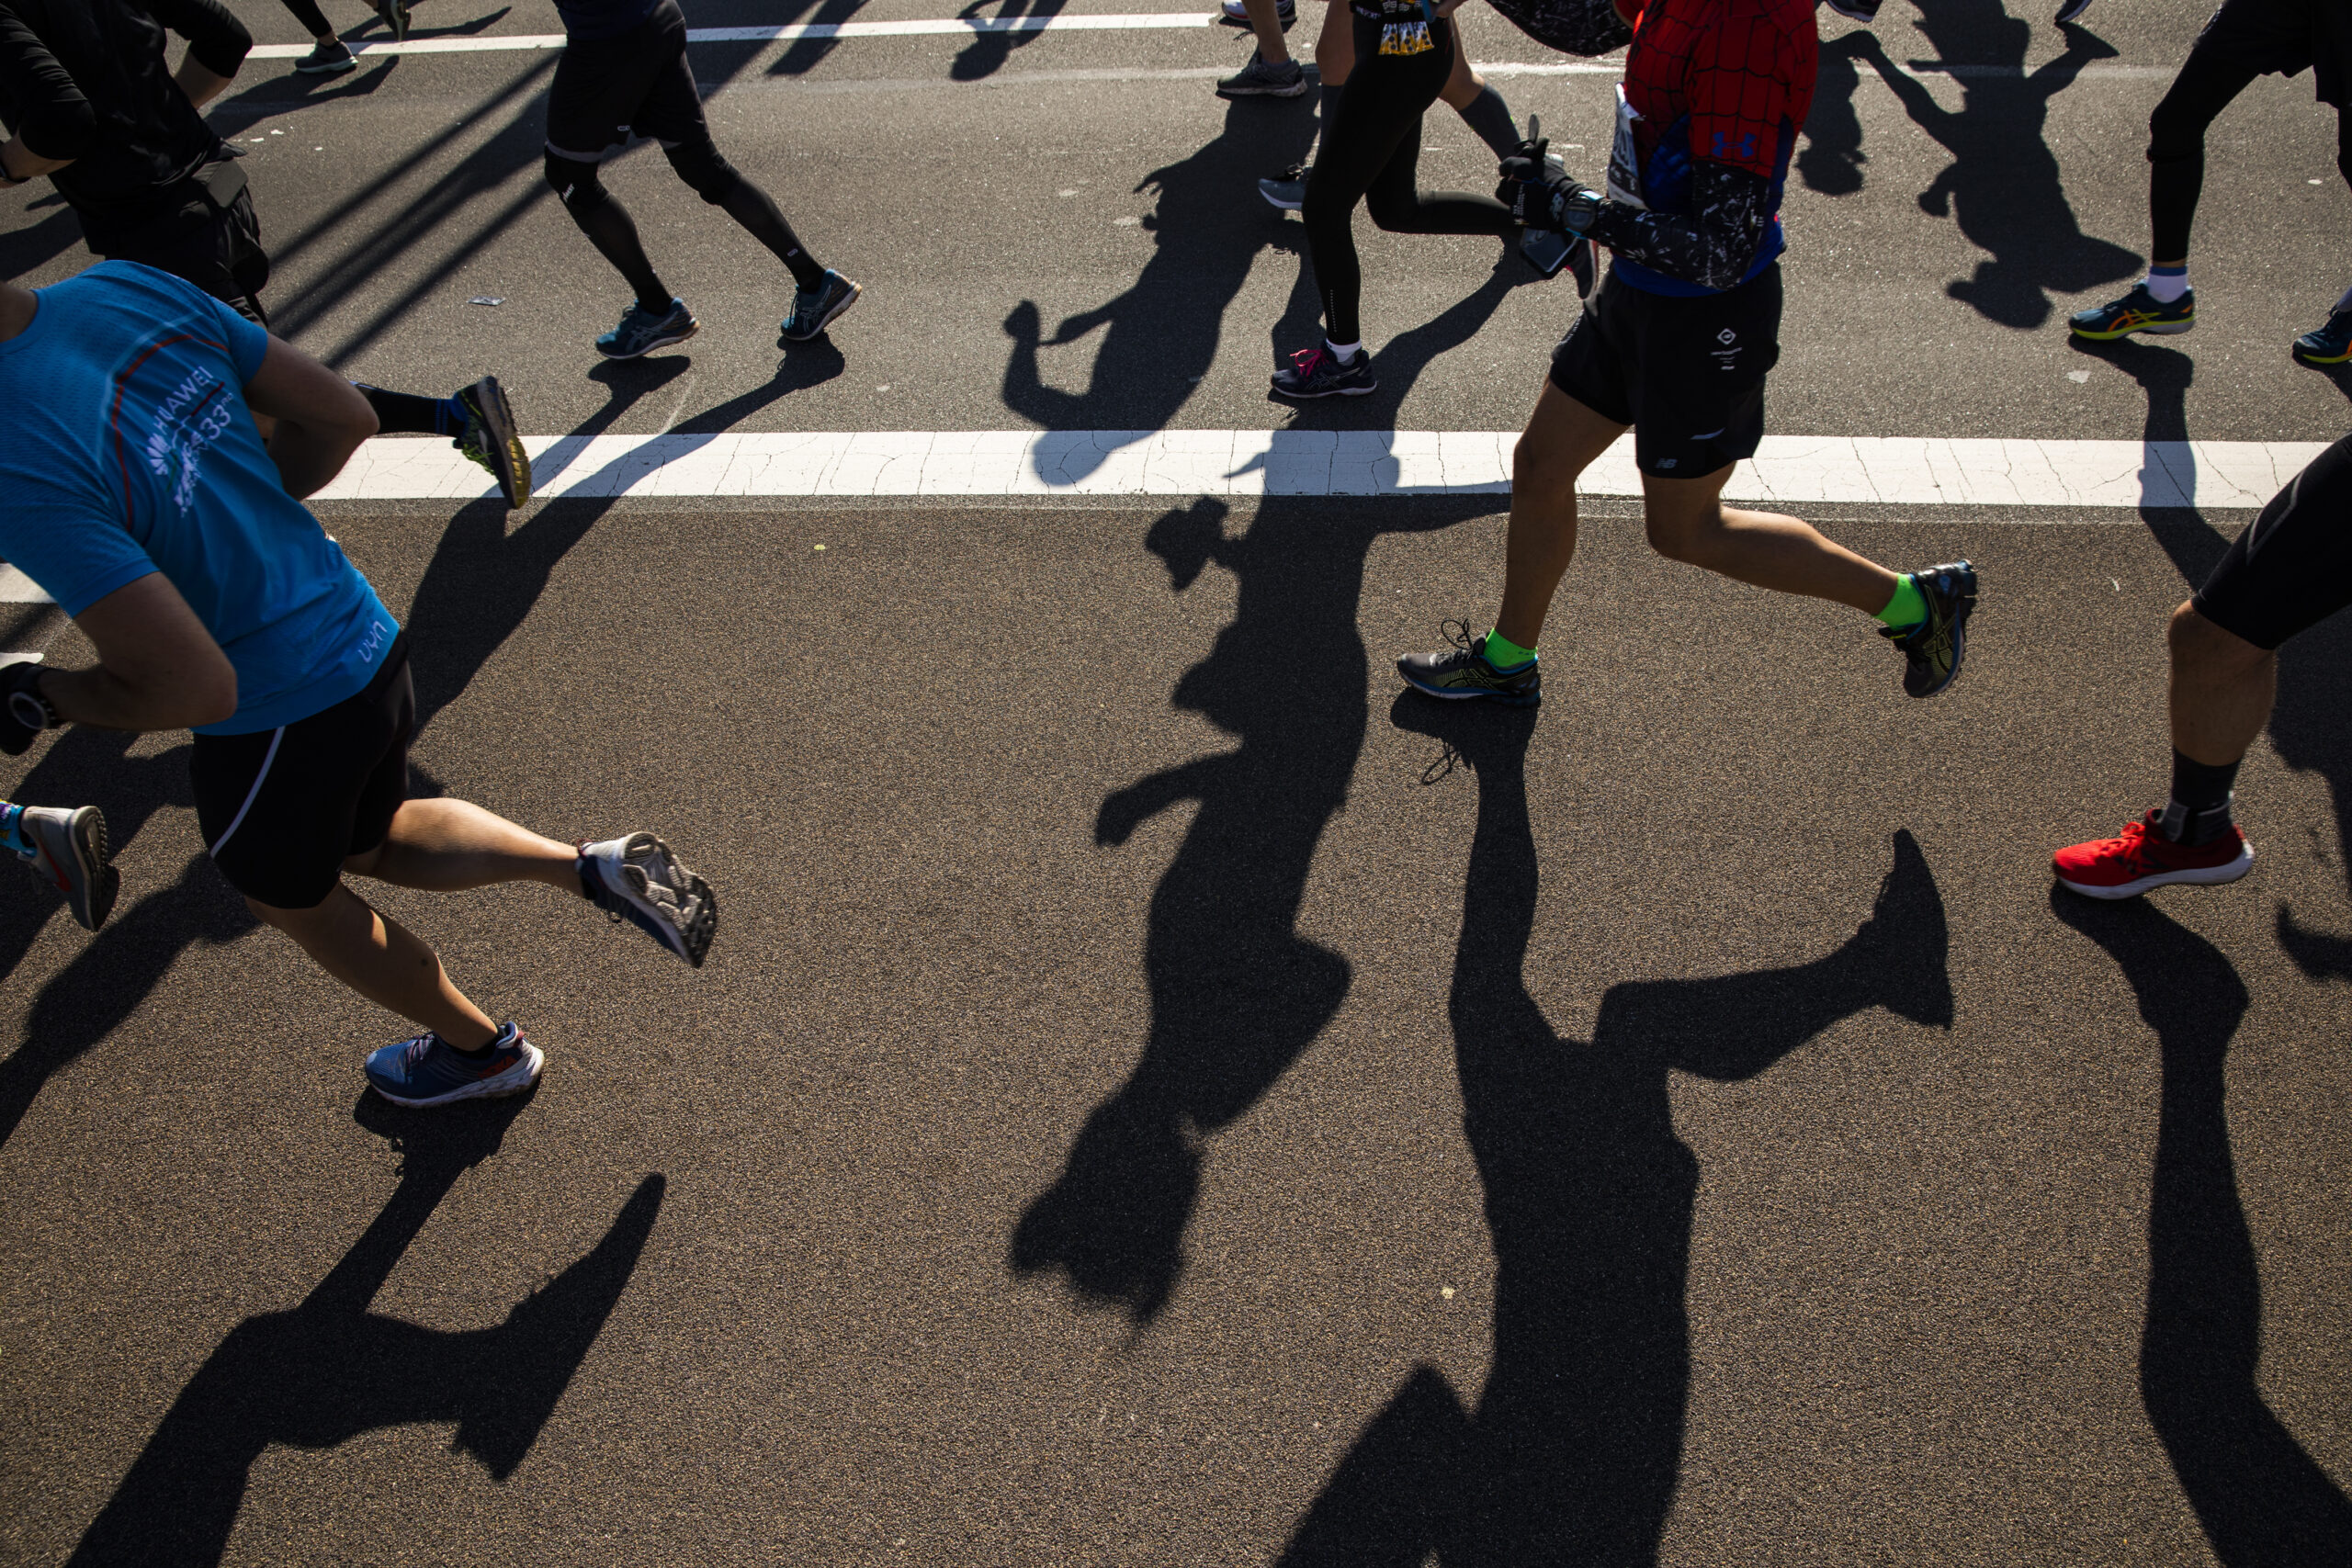 Ben Norman's shot that made the front page stands alone; no one runner is featured and there are as many shadows as bodies